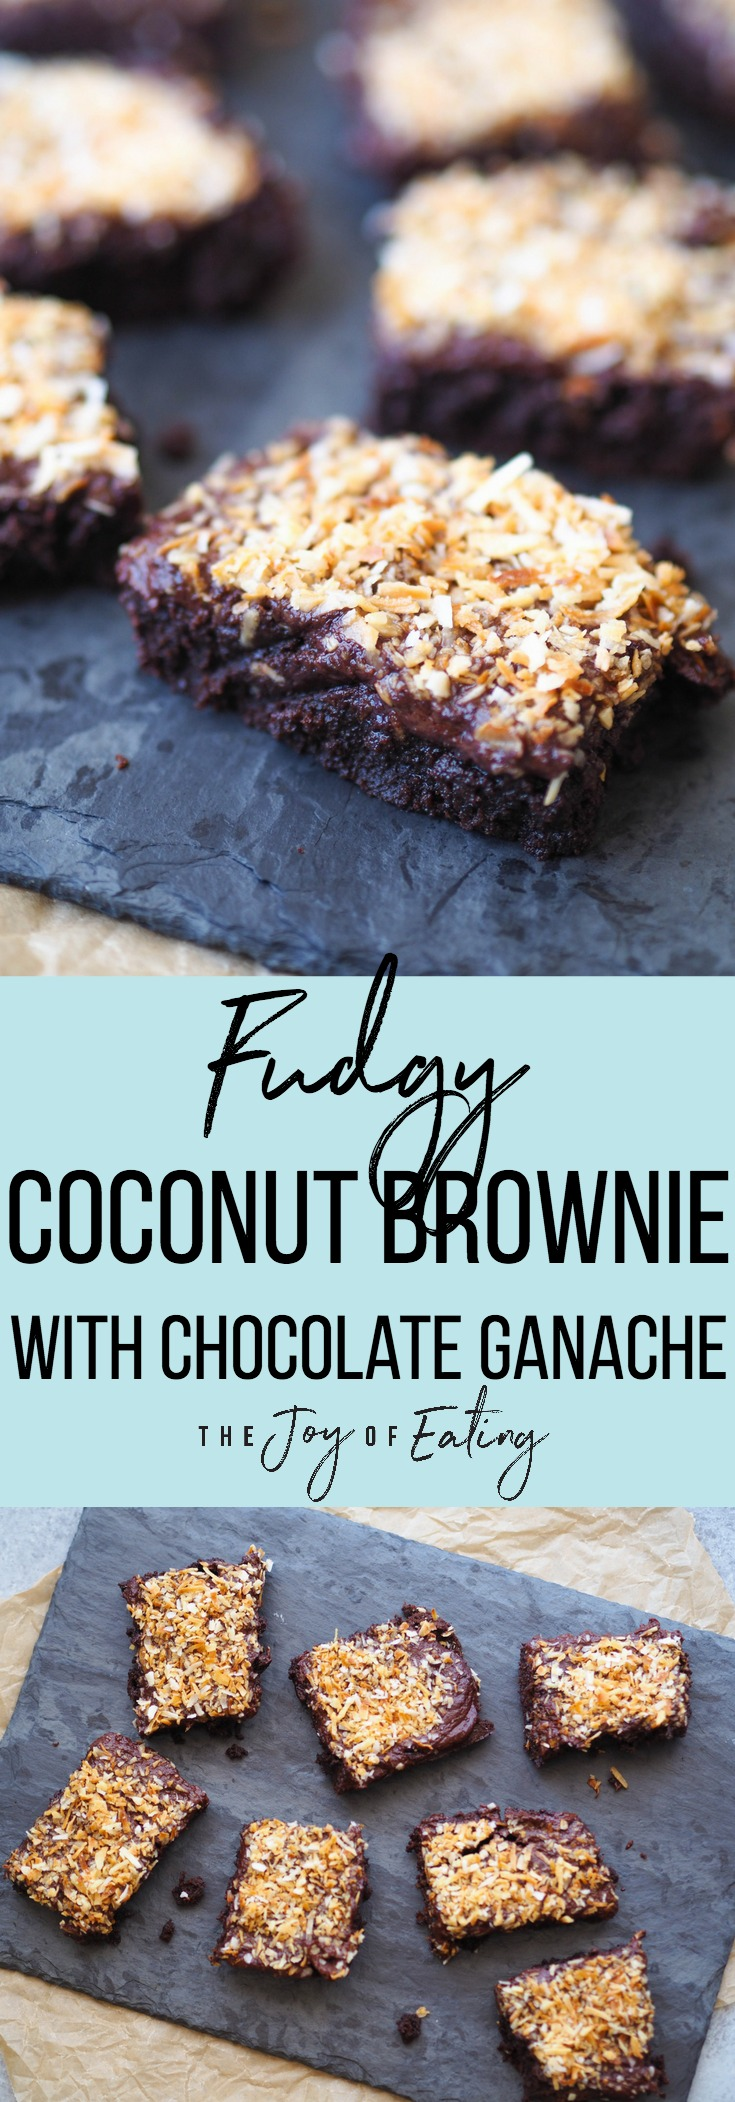 If you love fudgy brownies, these fudgy coconut brownies with chocolate ganache are perfection! #chocolate #brownie #coconut #baking